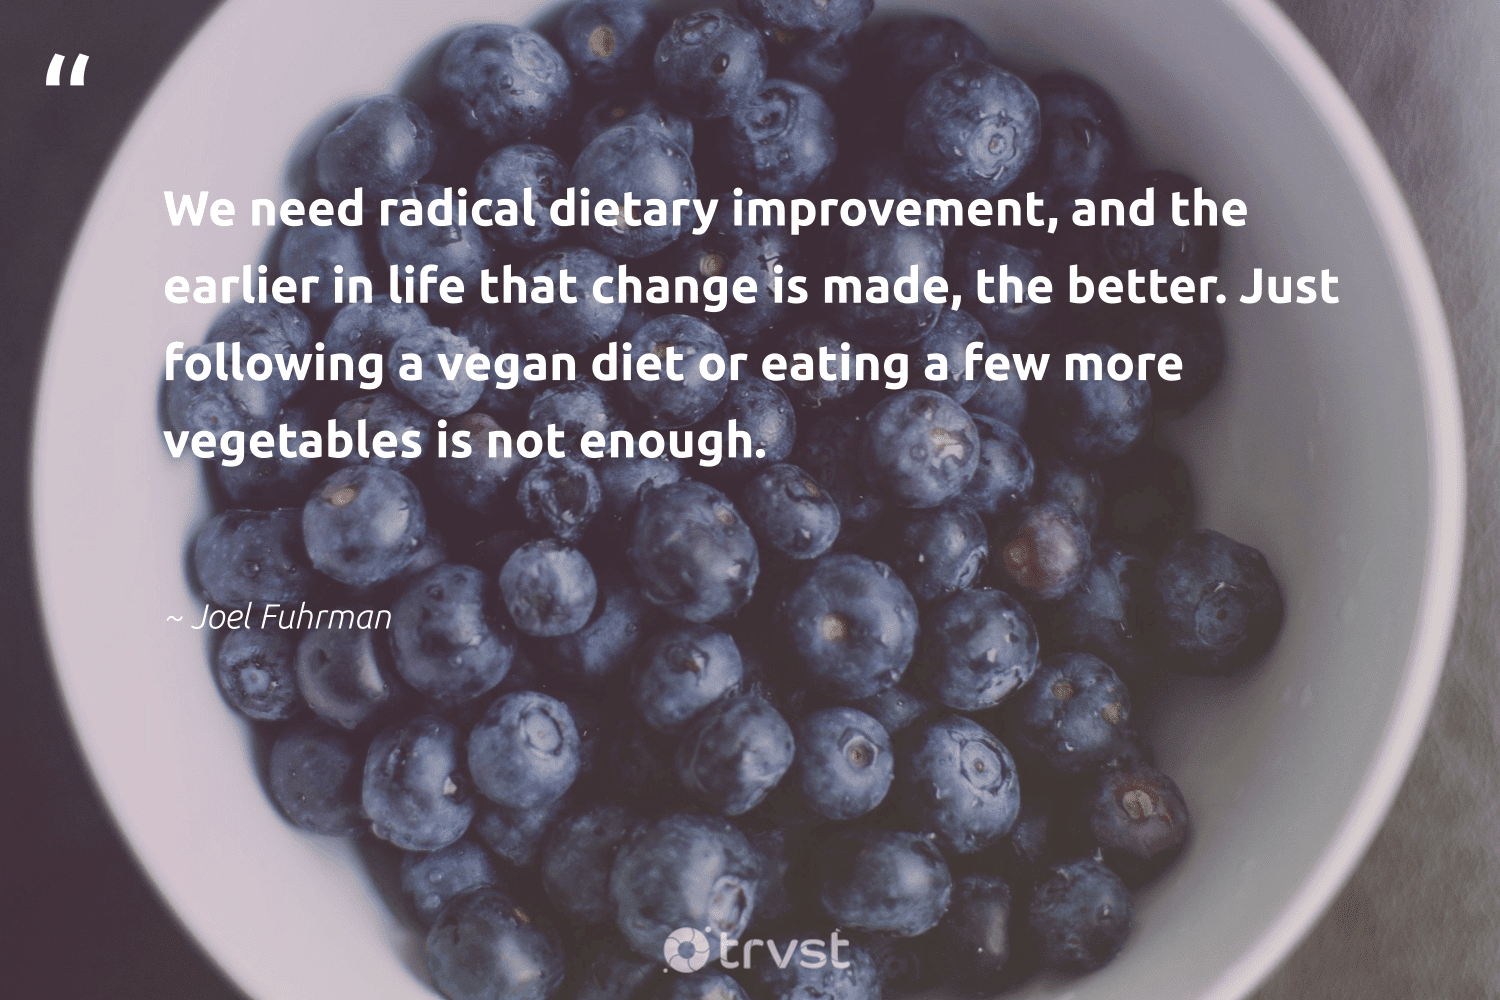 """""""We need radical dietary improvement, and the earlier in life that change is made, the better. Just following a vegan diet or eating a few more vegetables is not enough.""""  - Joel Fuhrman #trvst #quotes #vegan #veganfood #fashion #greenliving #dosomething #vegetarian #green #sustainability #socialchange #plantbased"""